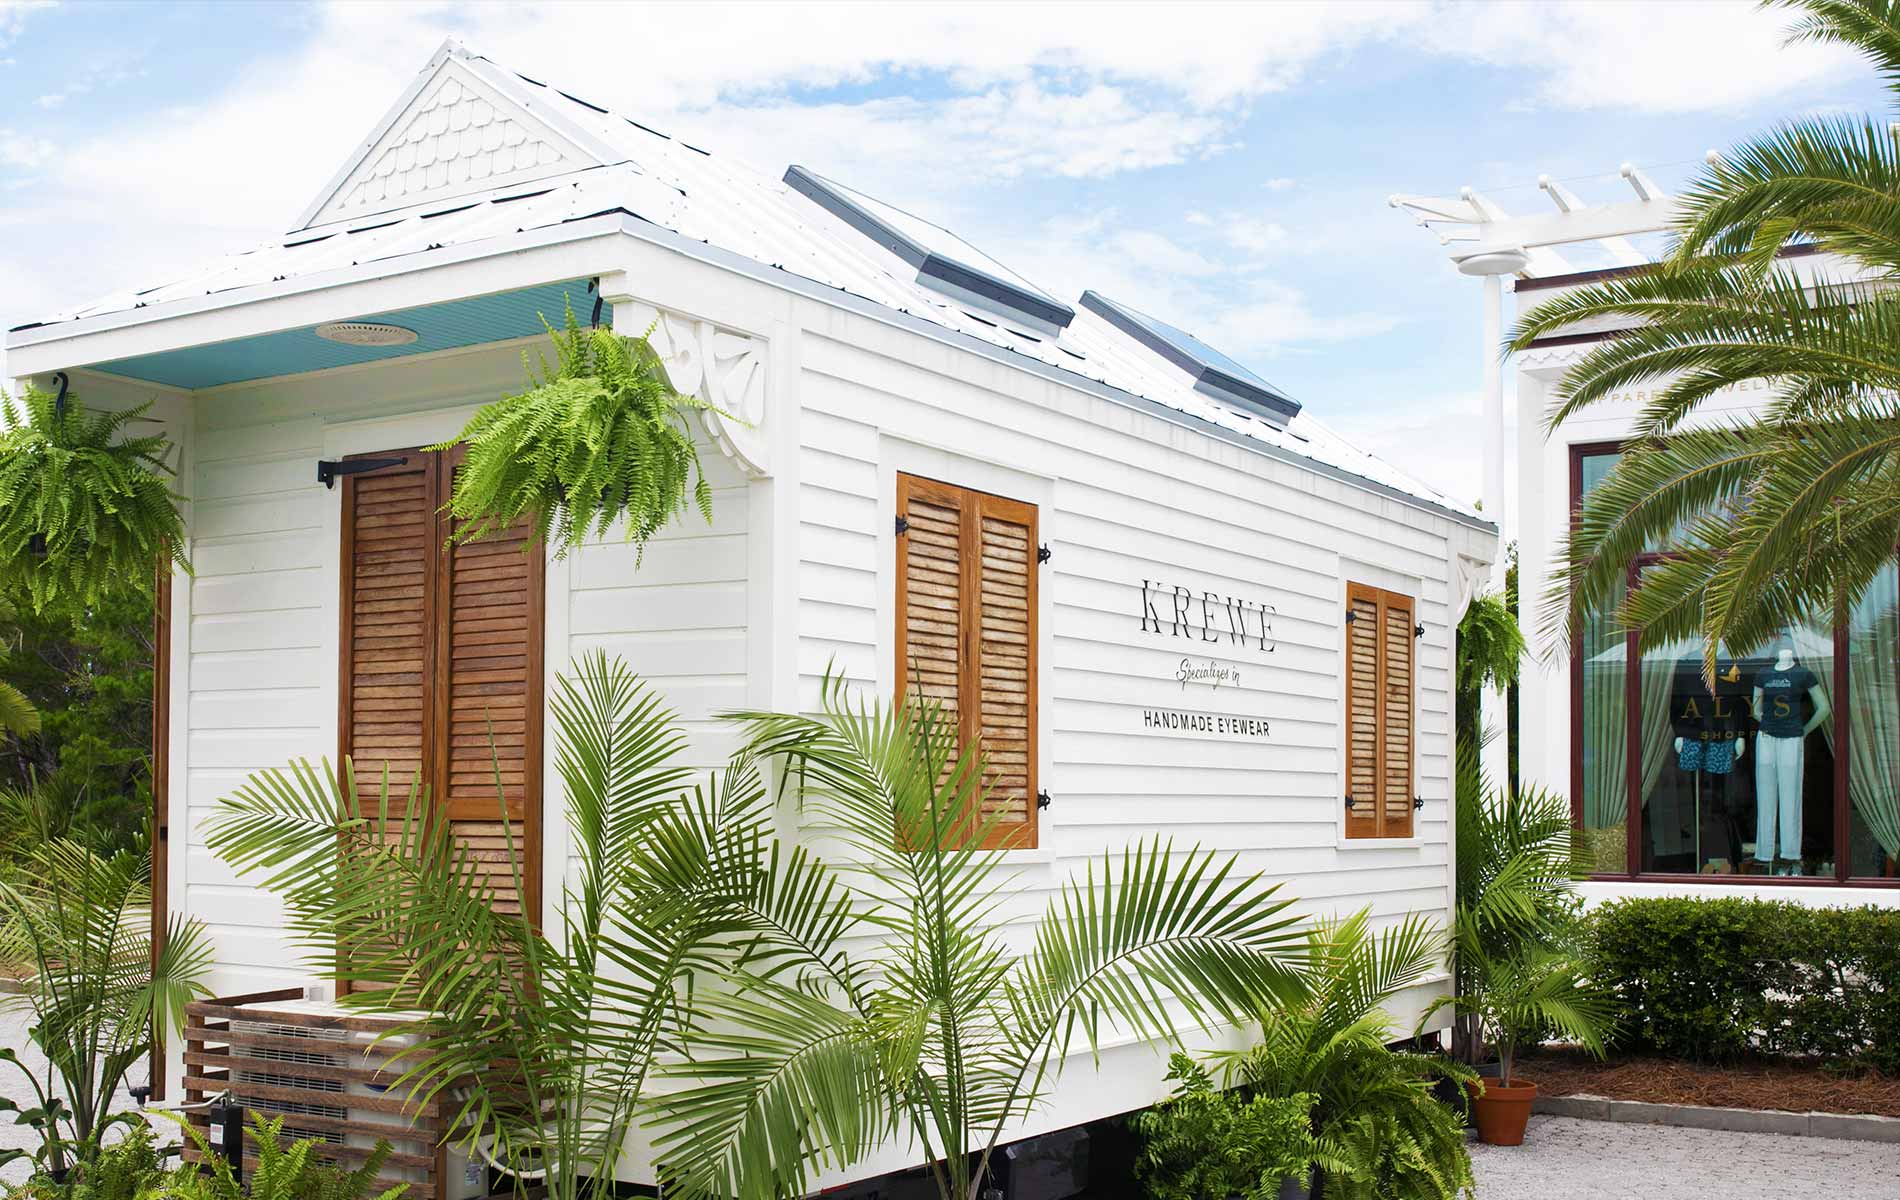 The Krewe Tiny House in Alys Beach, VIE Magazine Home Issue